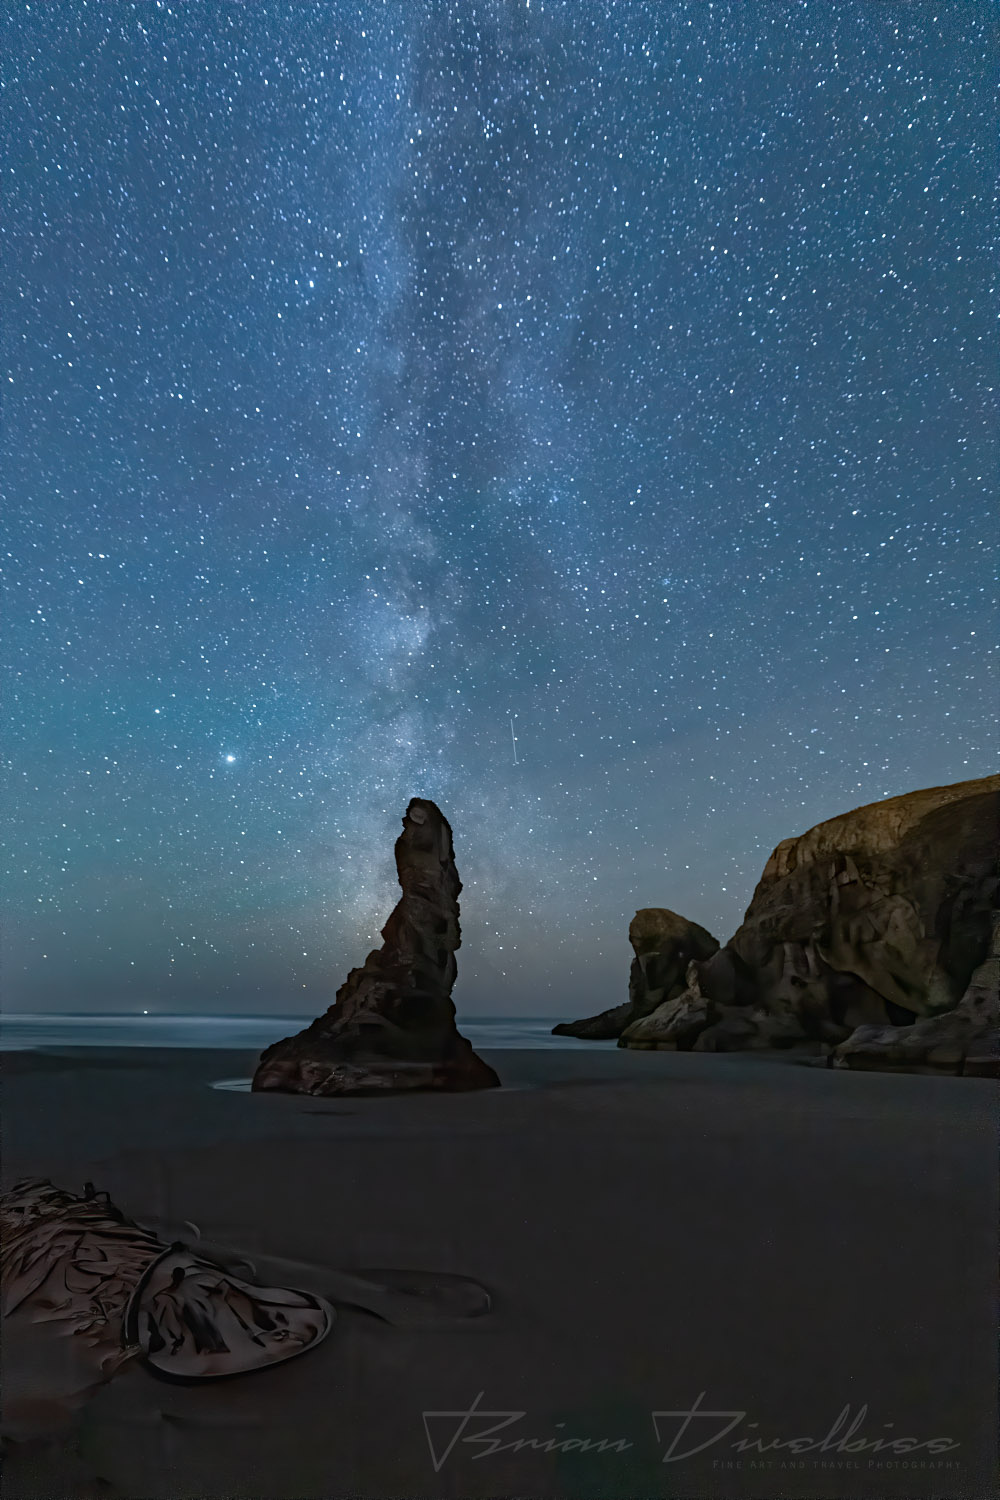 A seastack on the beach points to the starry sky above in Bandon, Oregon.